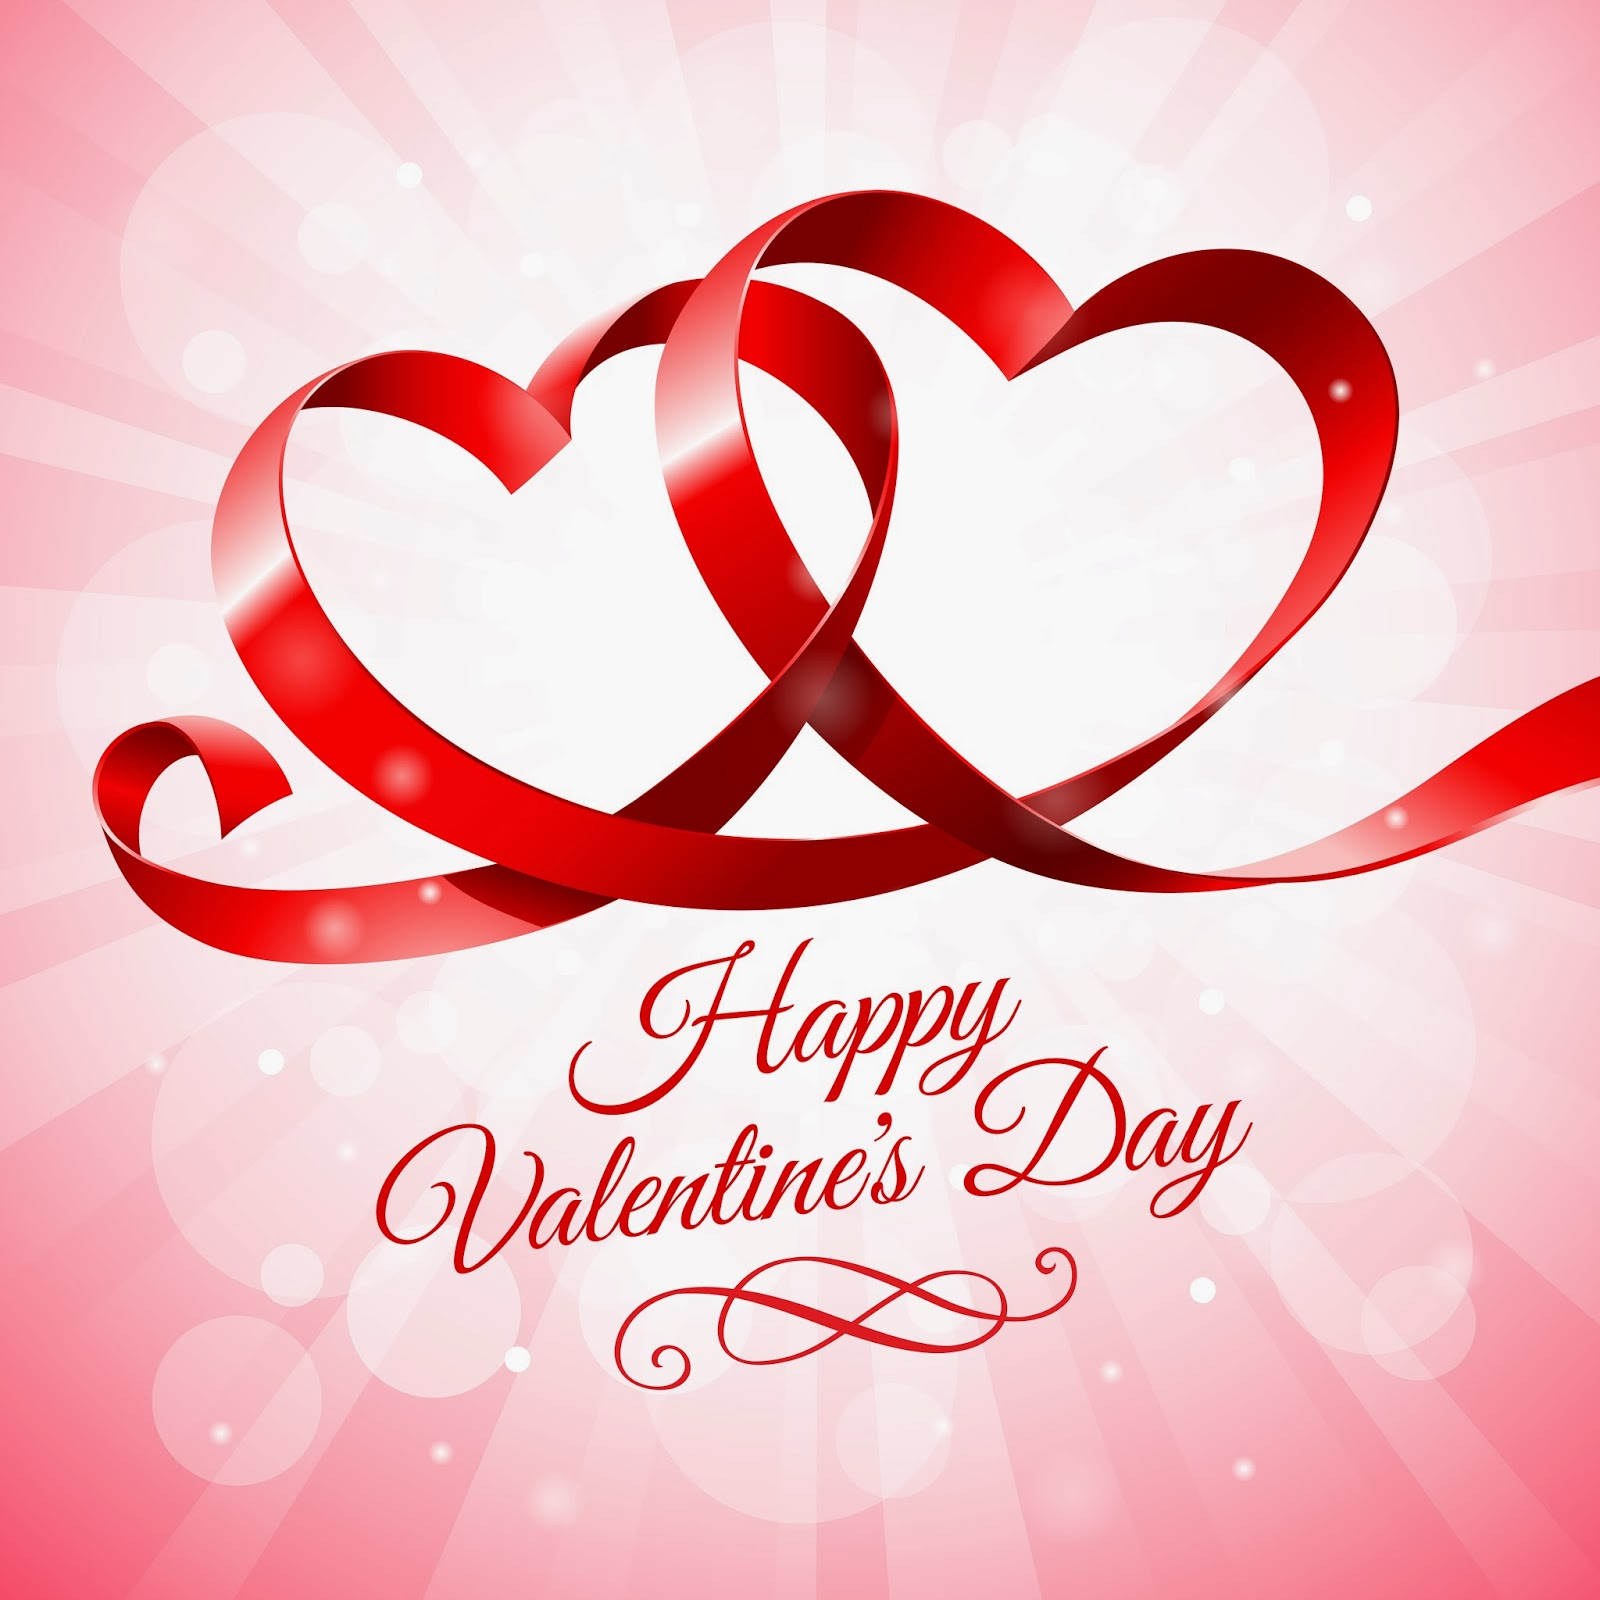 nadia alfa vegas Google – Happy Valentines Day 2015 Cards